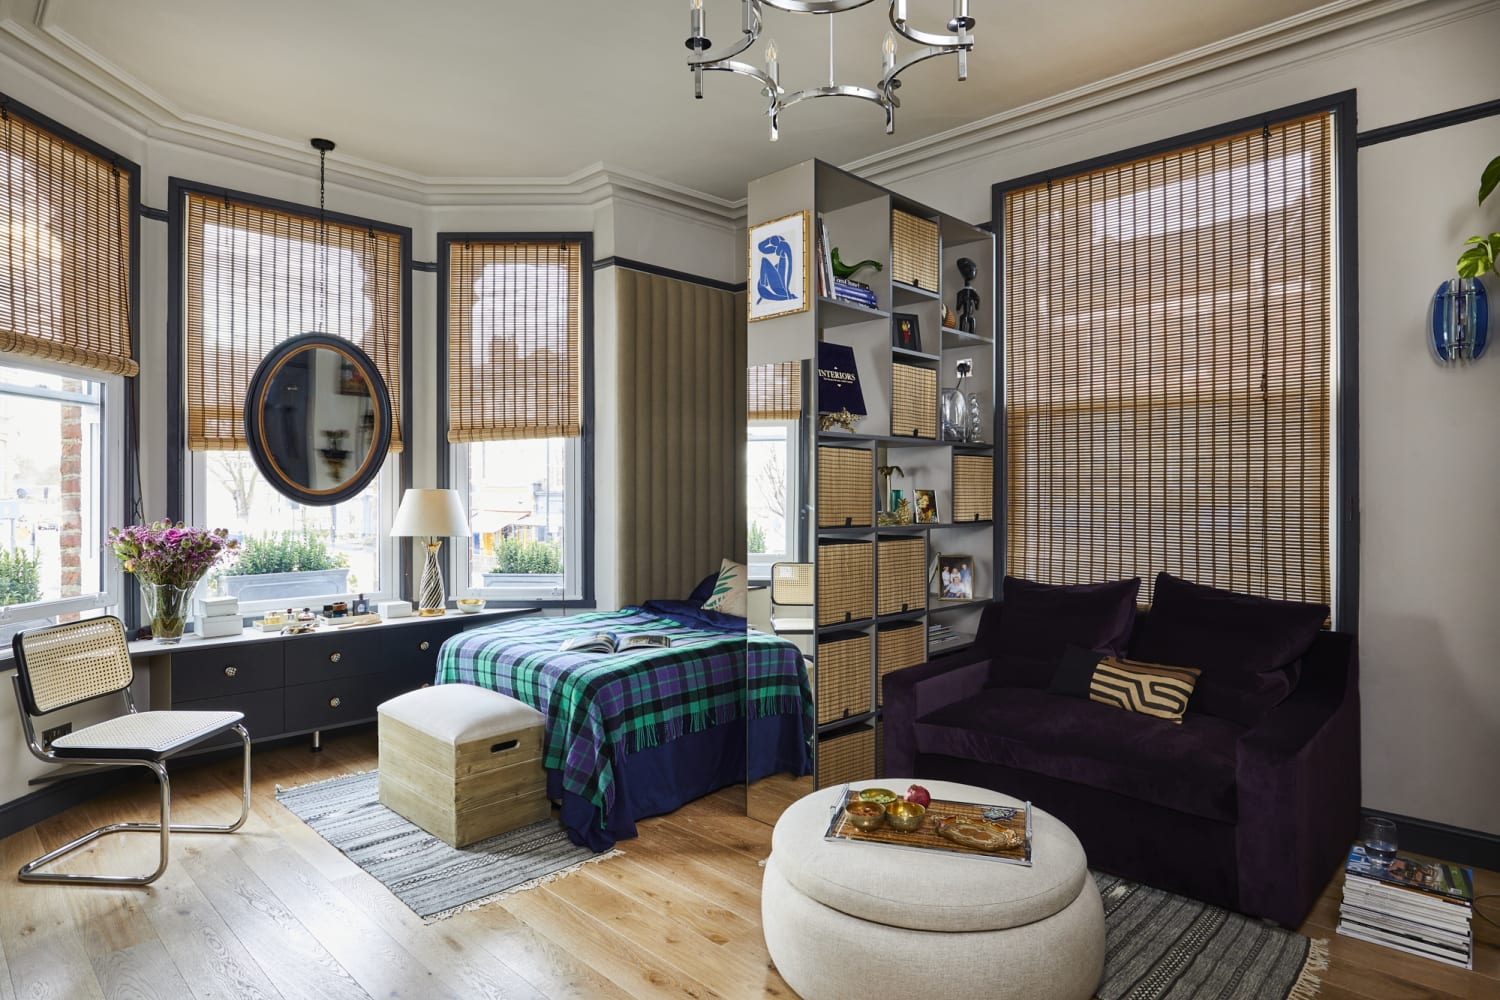 A Small London Studio Shows How to Create Stylish, Functional Sections in a One-Room Home